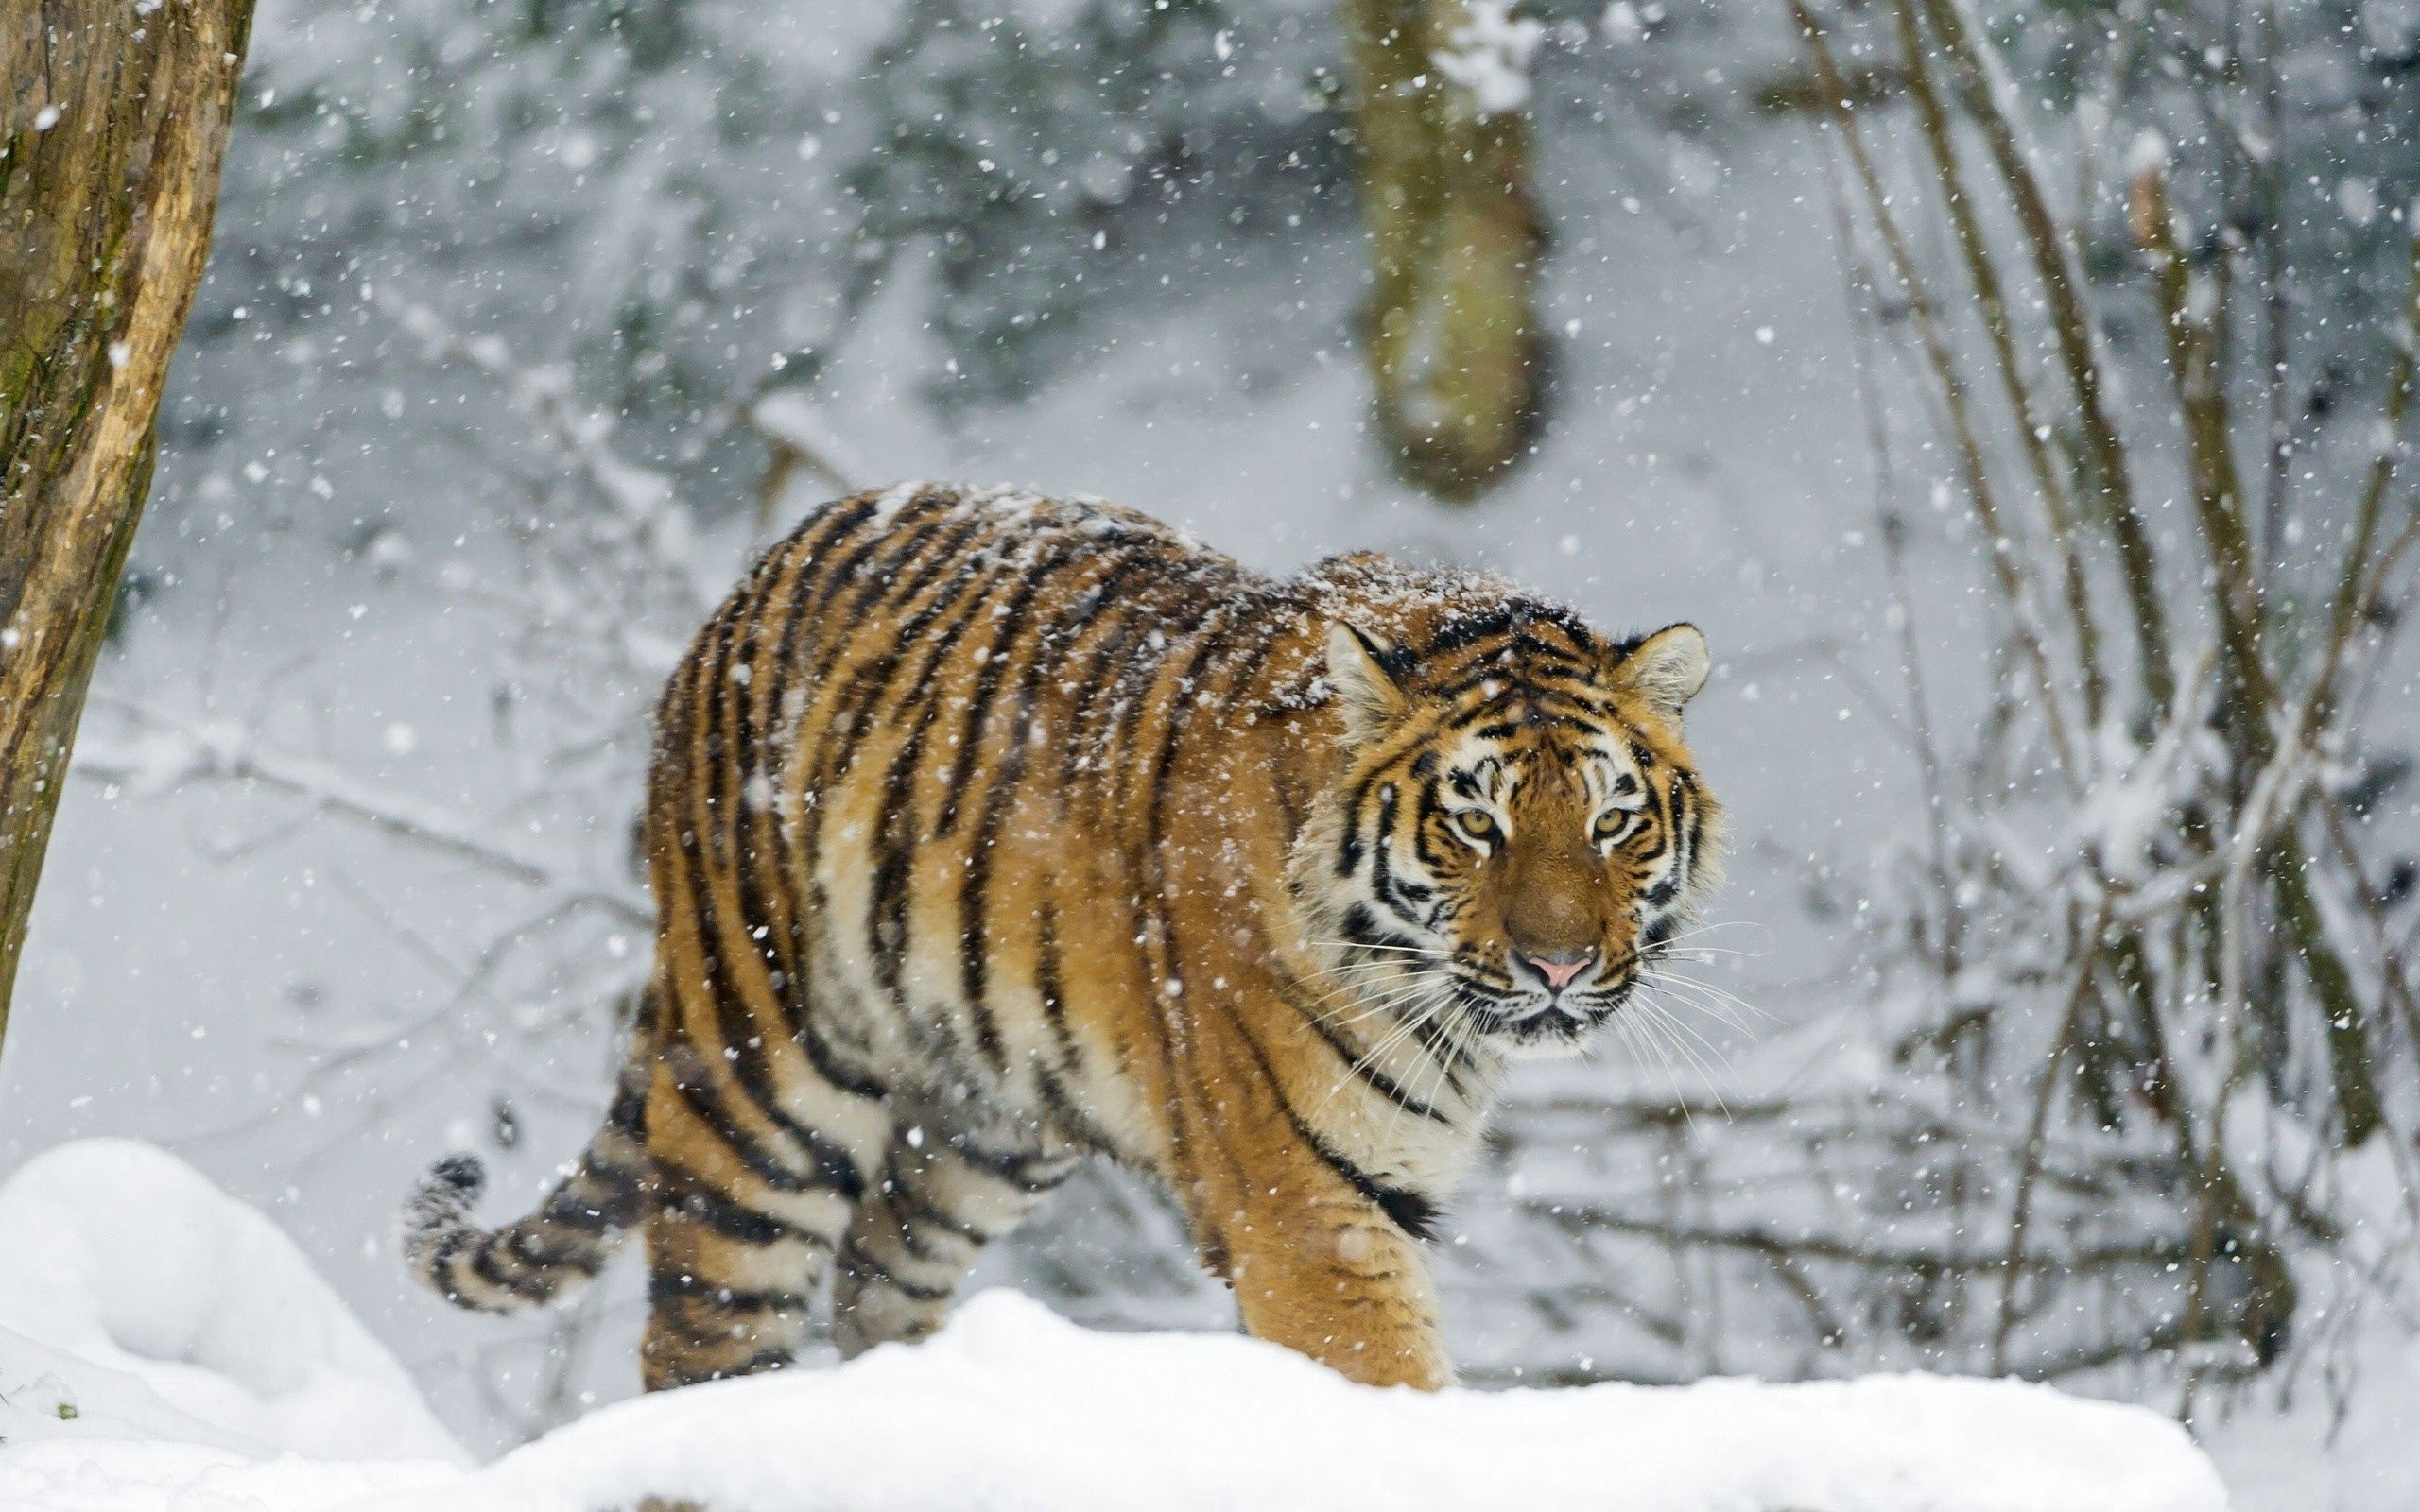 114420 download wallpaper Animals, Tiger, Snow, Stroll, Predator screensavers and pictures for free